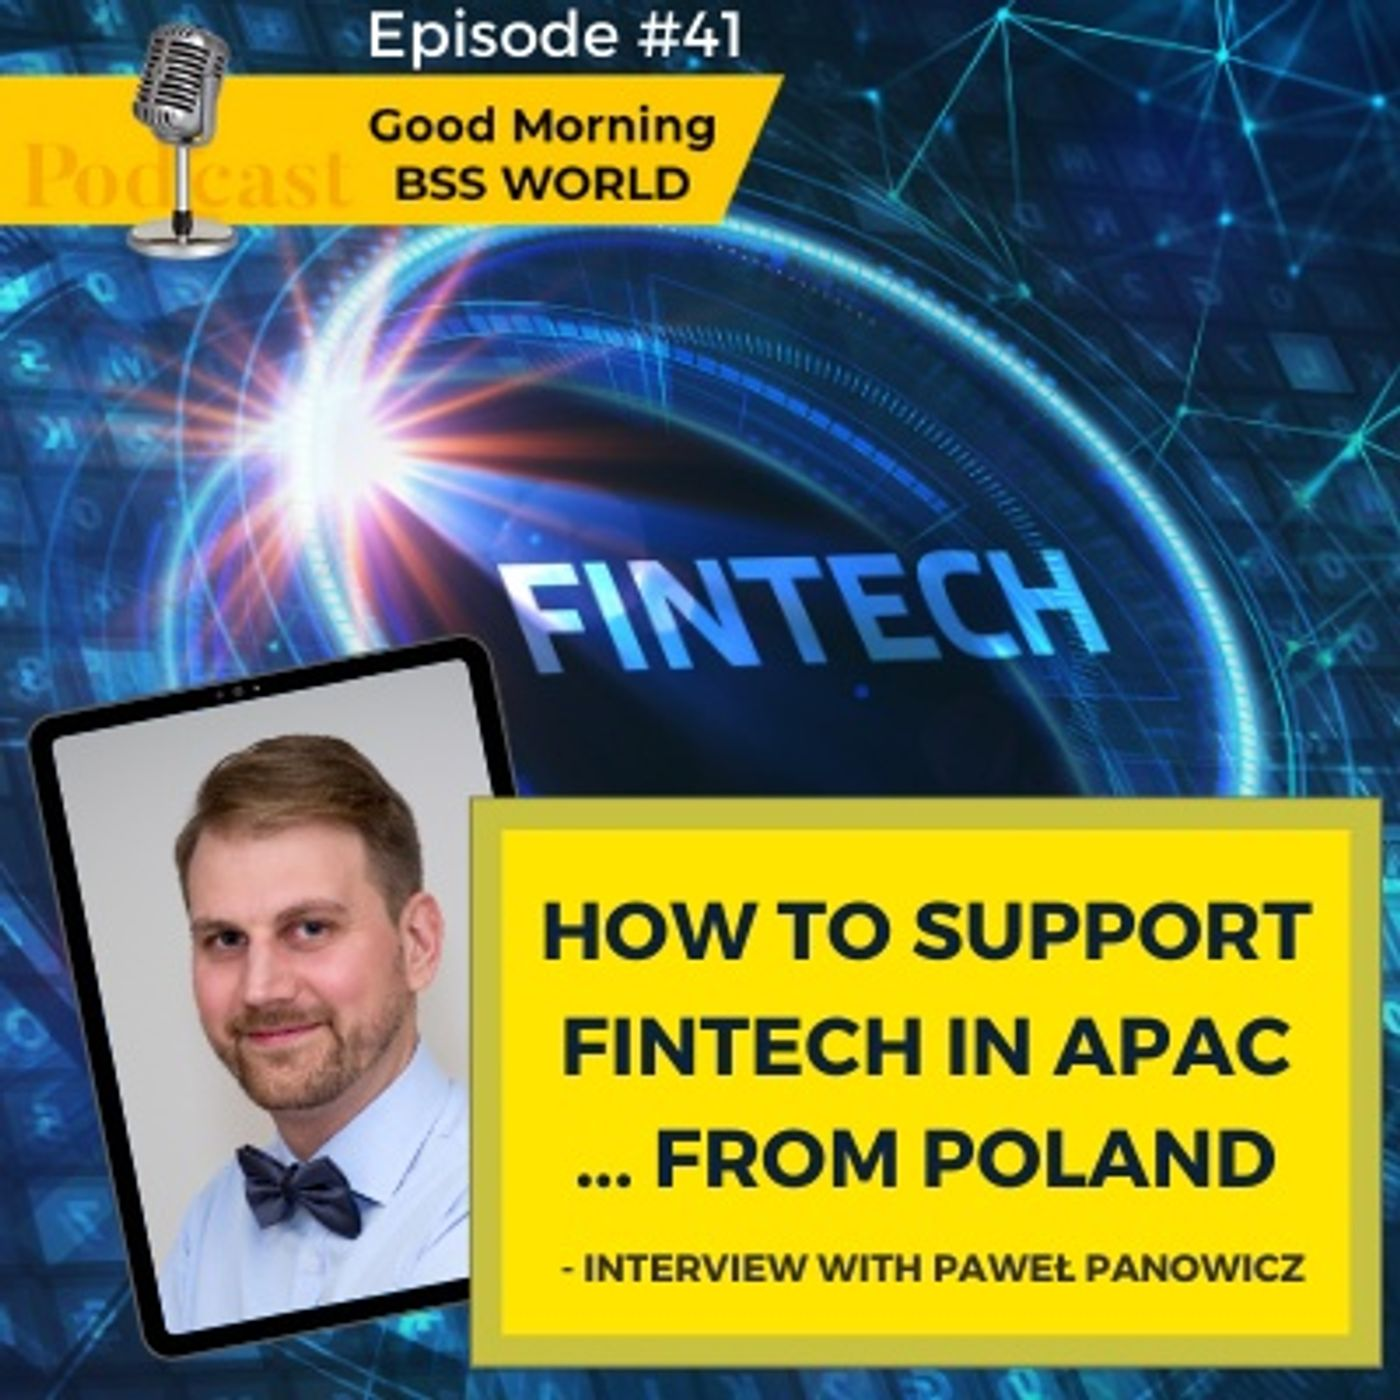 #41 How to support FinTech in APAC ... from Poland - interview with Pawel Panowicz